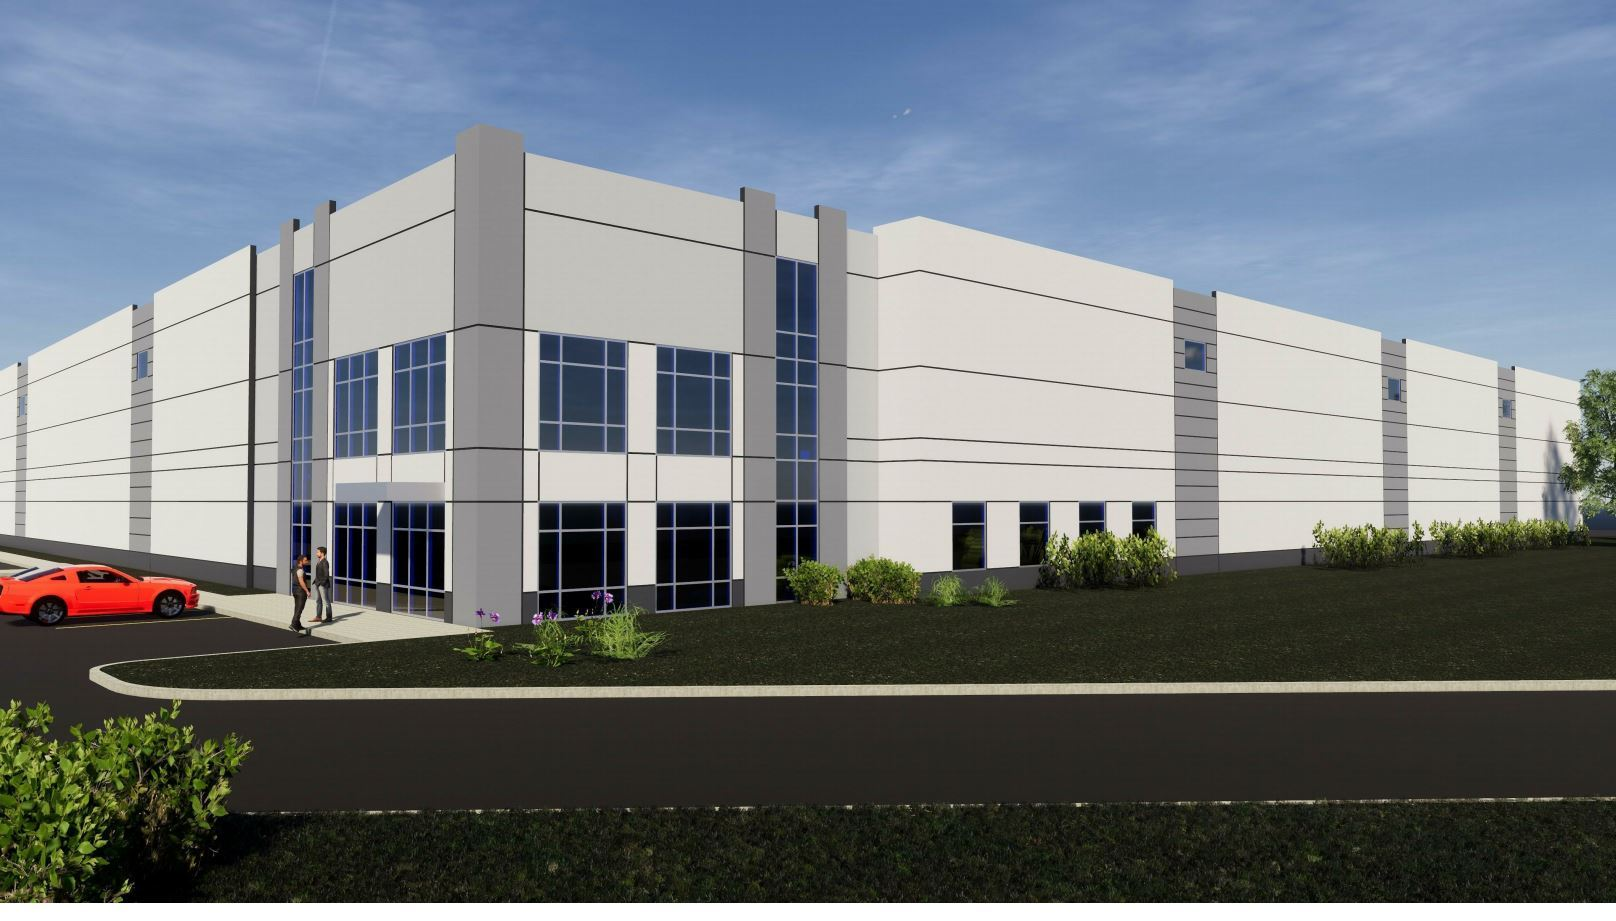 Plainfield Spec Building Rendering